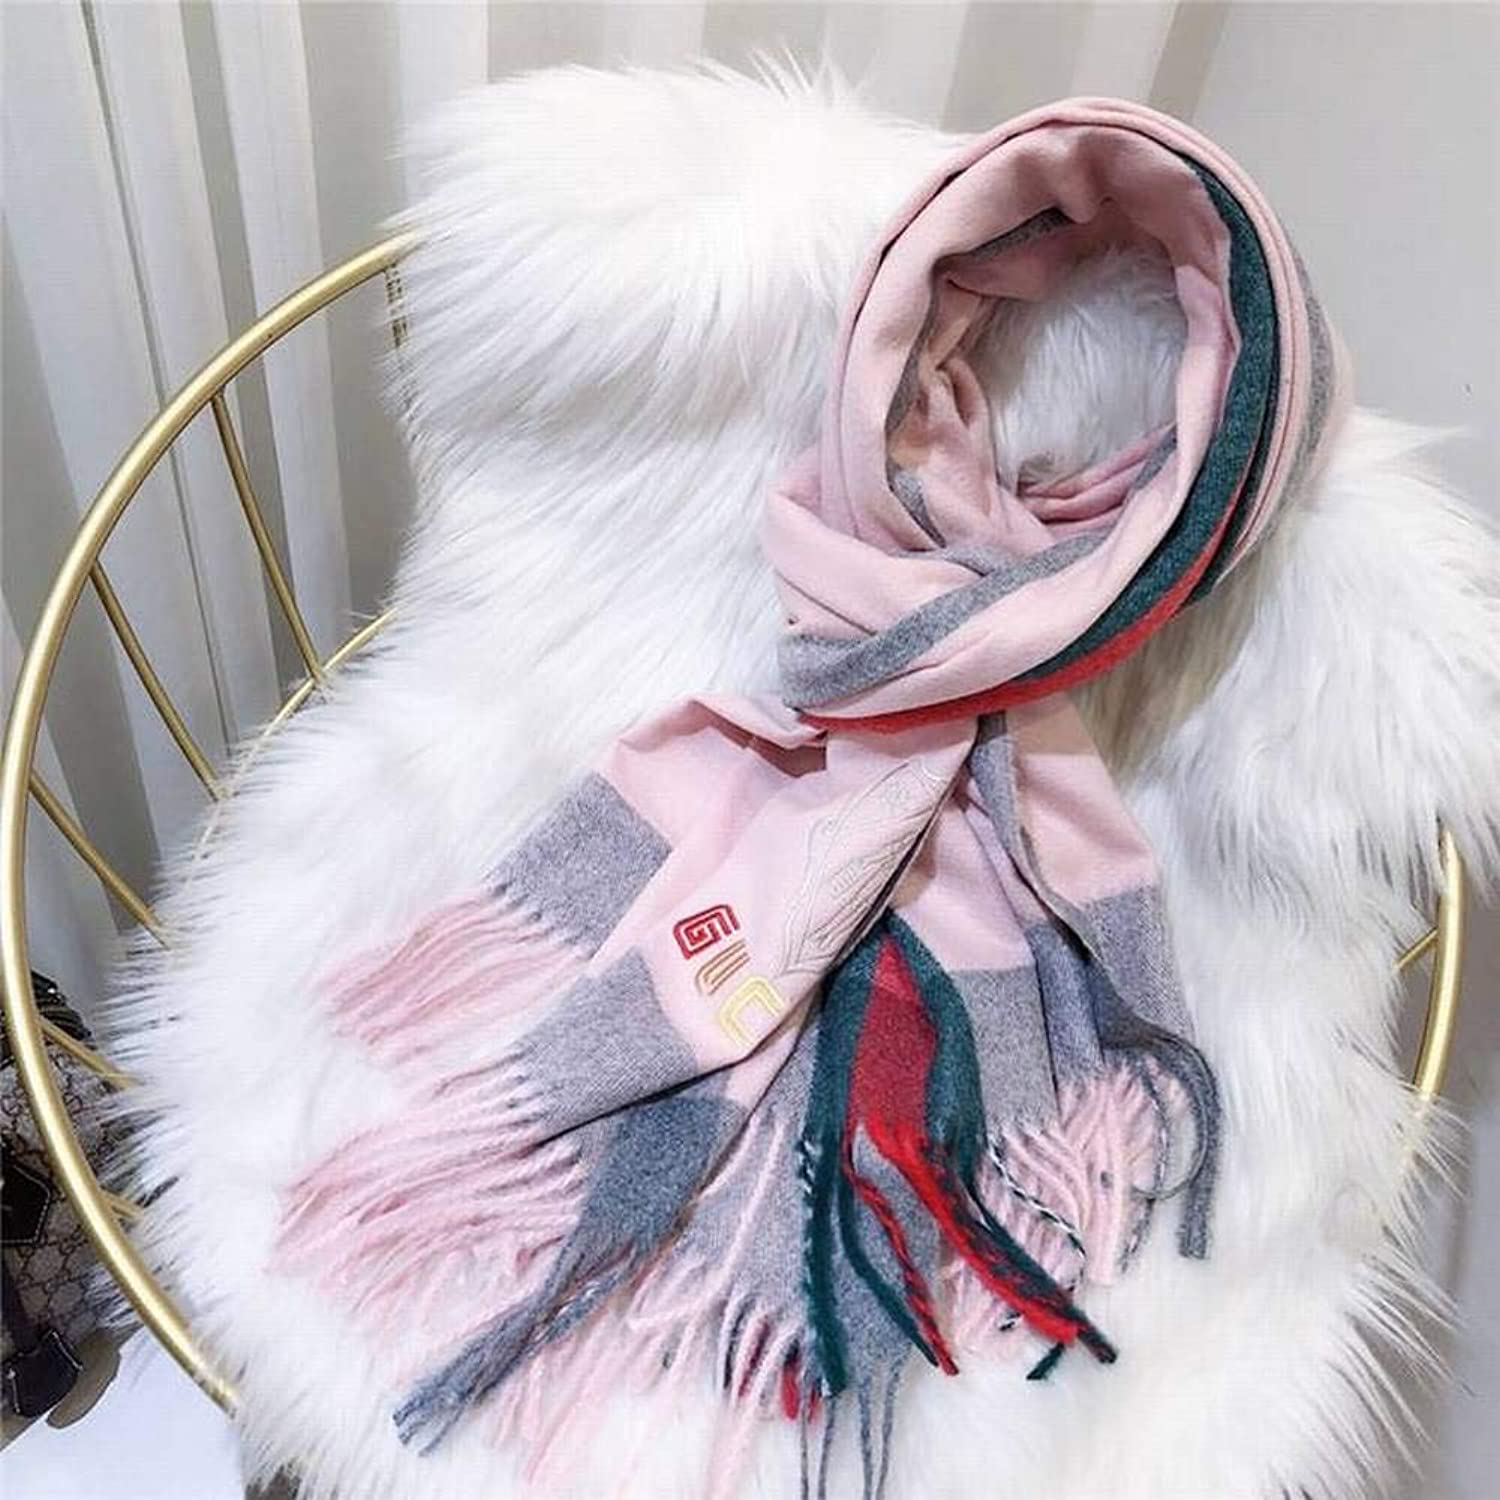 WJL Sweet Tassels Cgreymere Women Warm Stripes Long Autumn and Winter Outdoor MultiFunctional Fgreyion Trend Wild Warm Shawl Scarf Gift